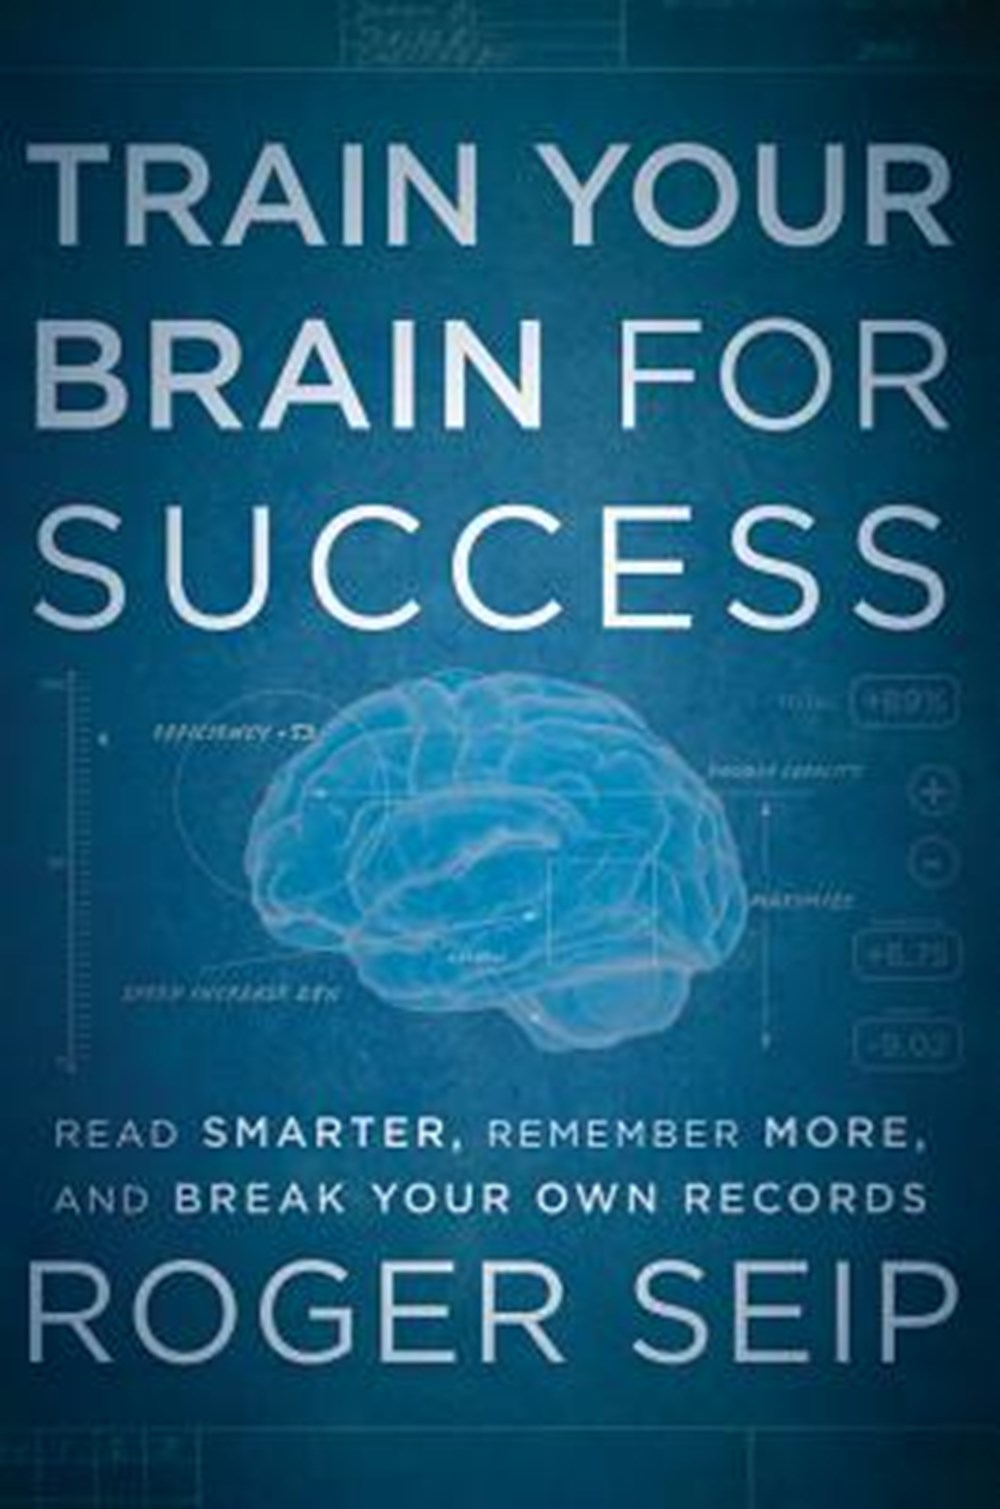 Train Your Brain for Success Read Smarter, Remember More, and Break Your Own Records